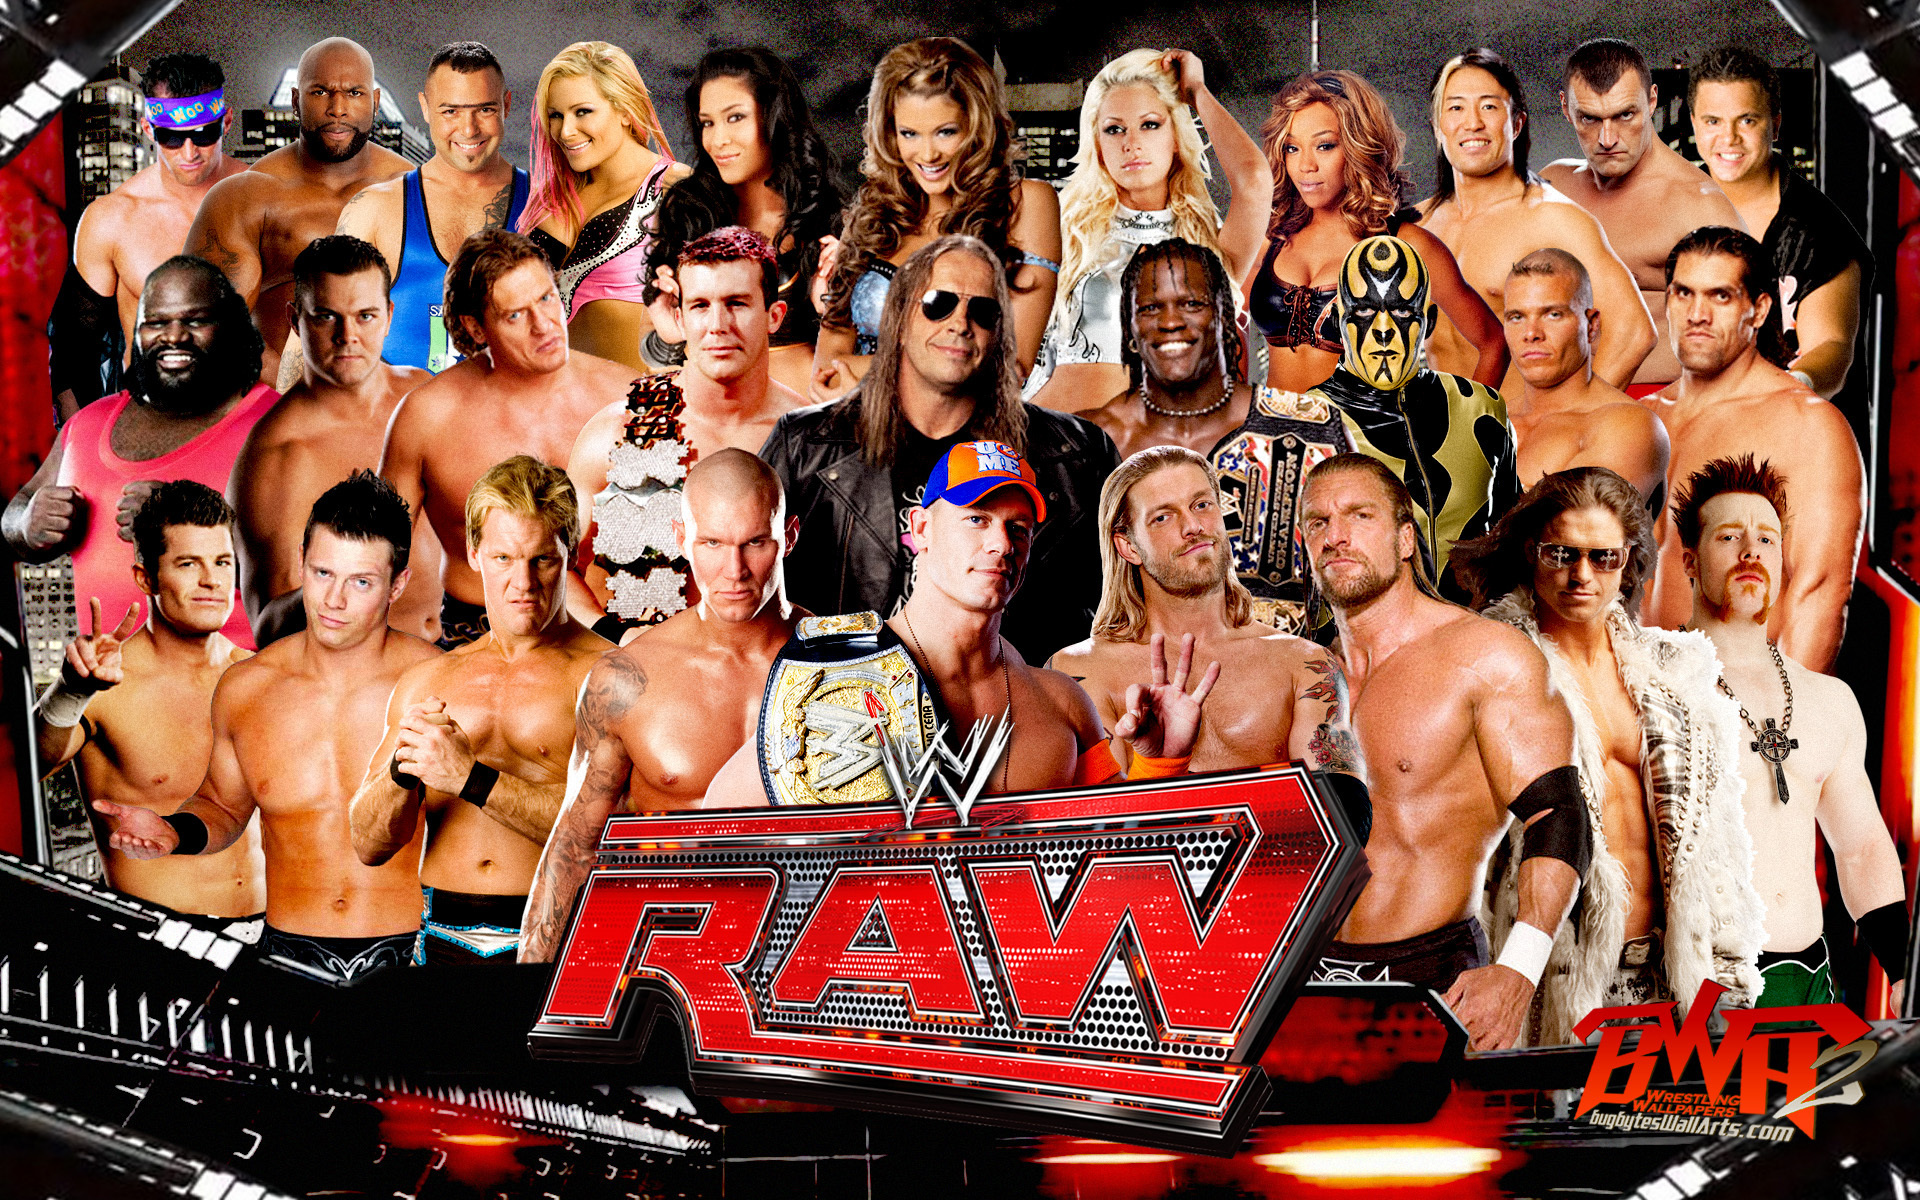 Wwe raw wwe wallpaper 16933714 fanpop - Monday night raw images ...